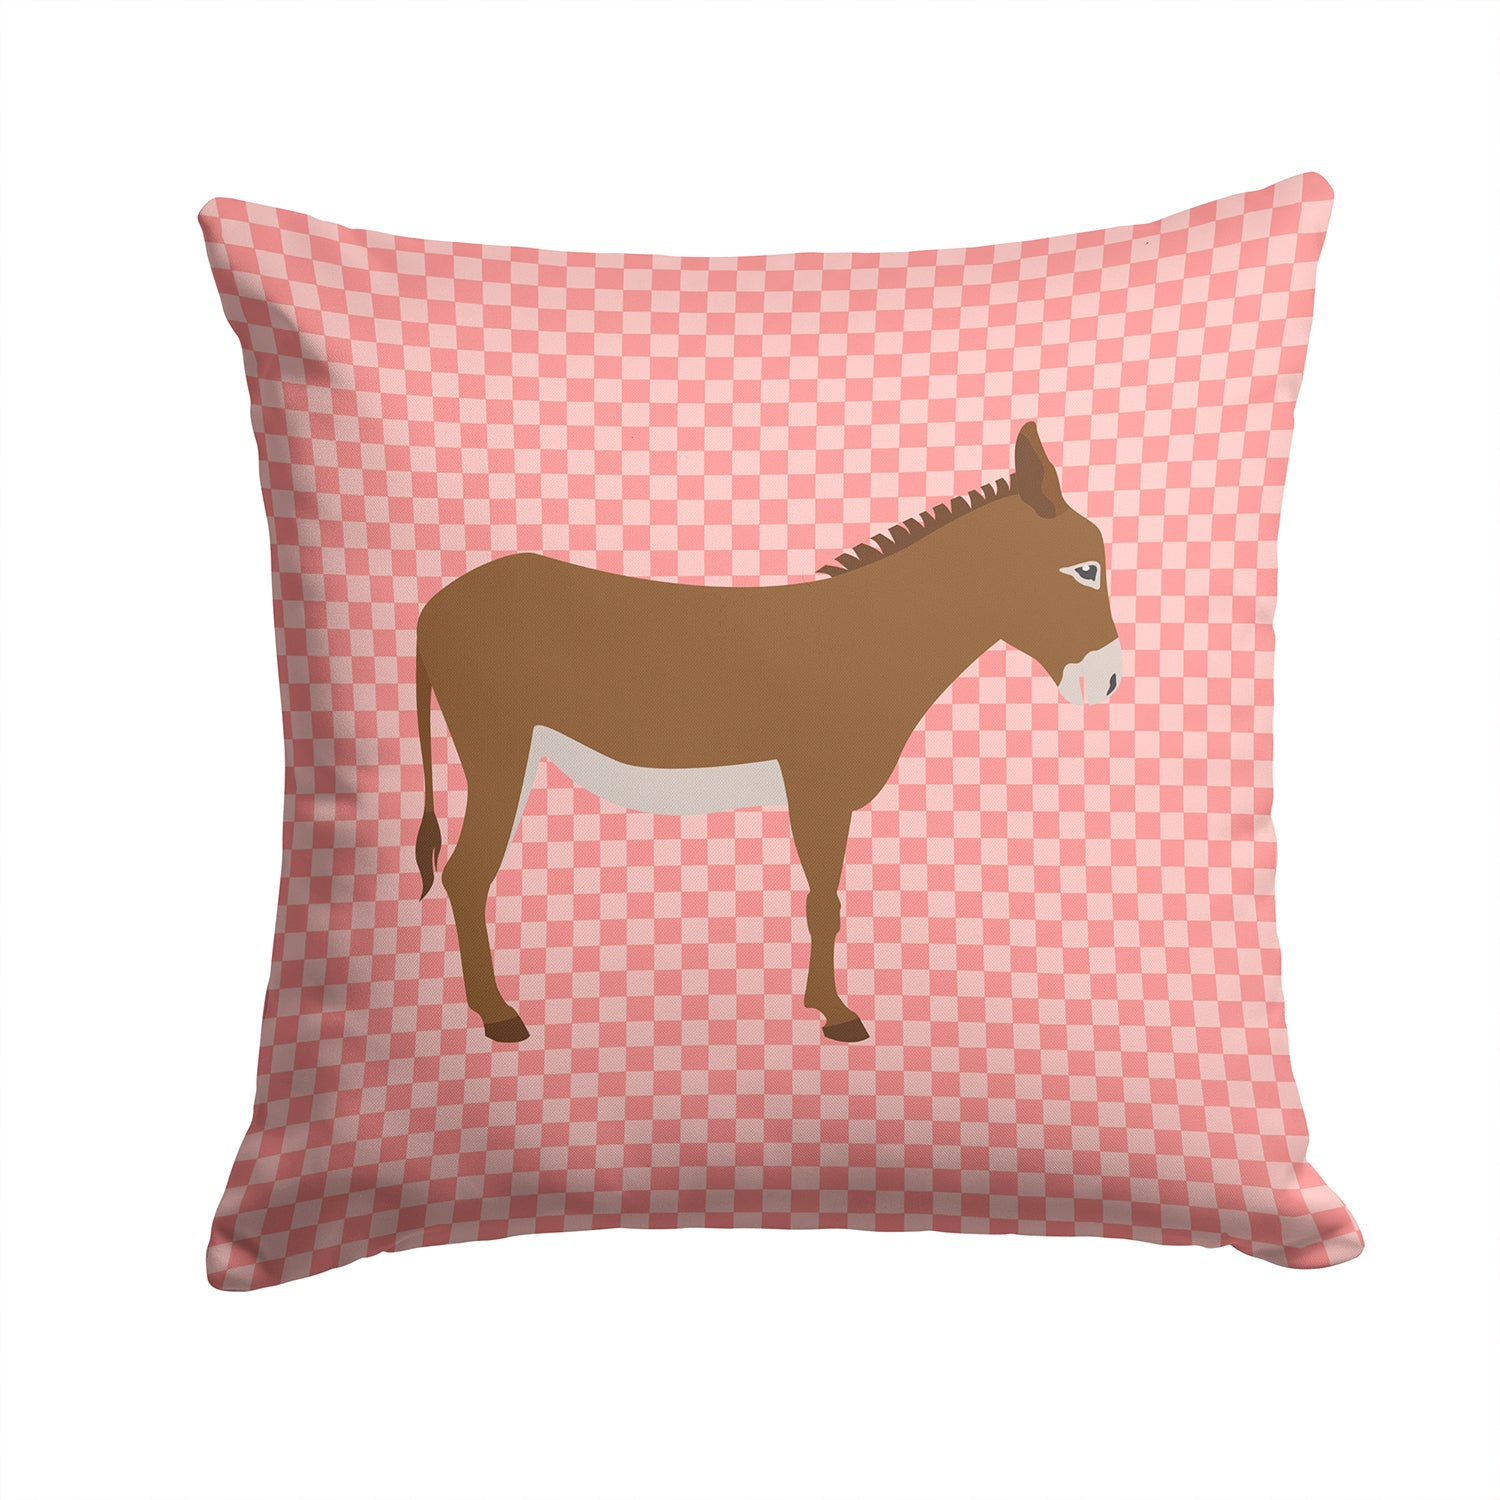 Cotentin Donkey Pink Check Fabric Decorative Pillow BB7849PW1414 by Caroline's Treasures